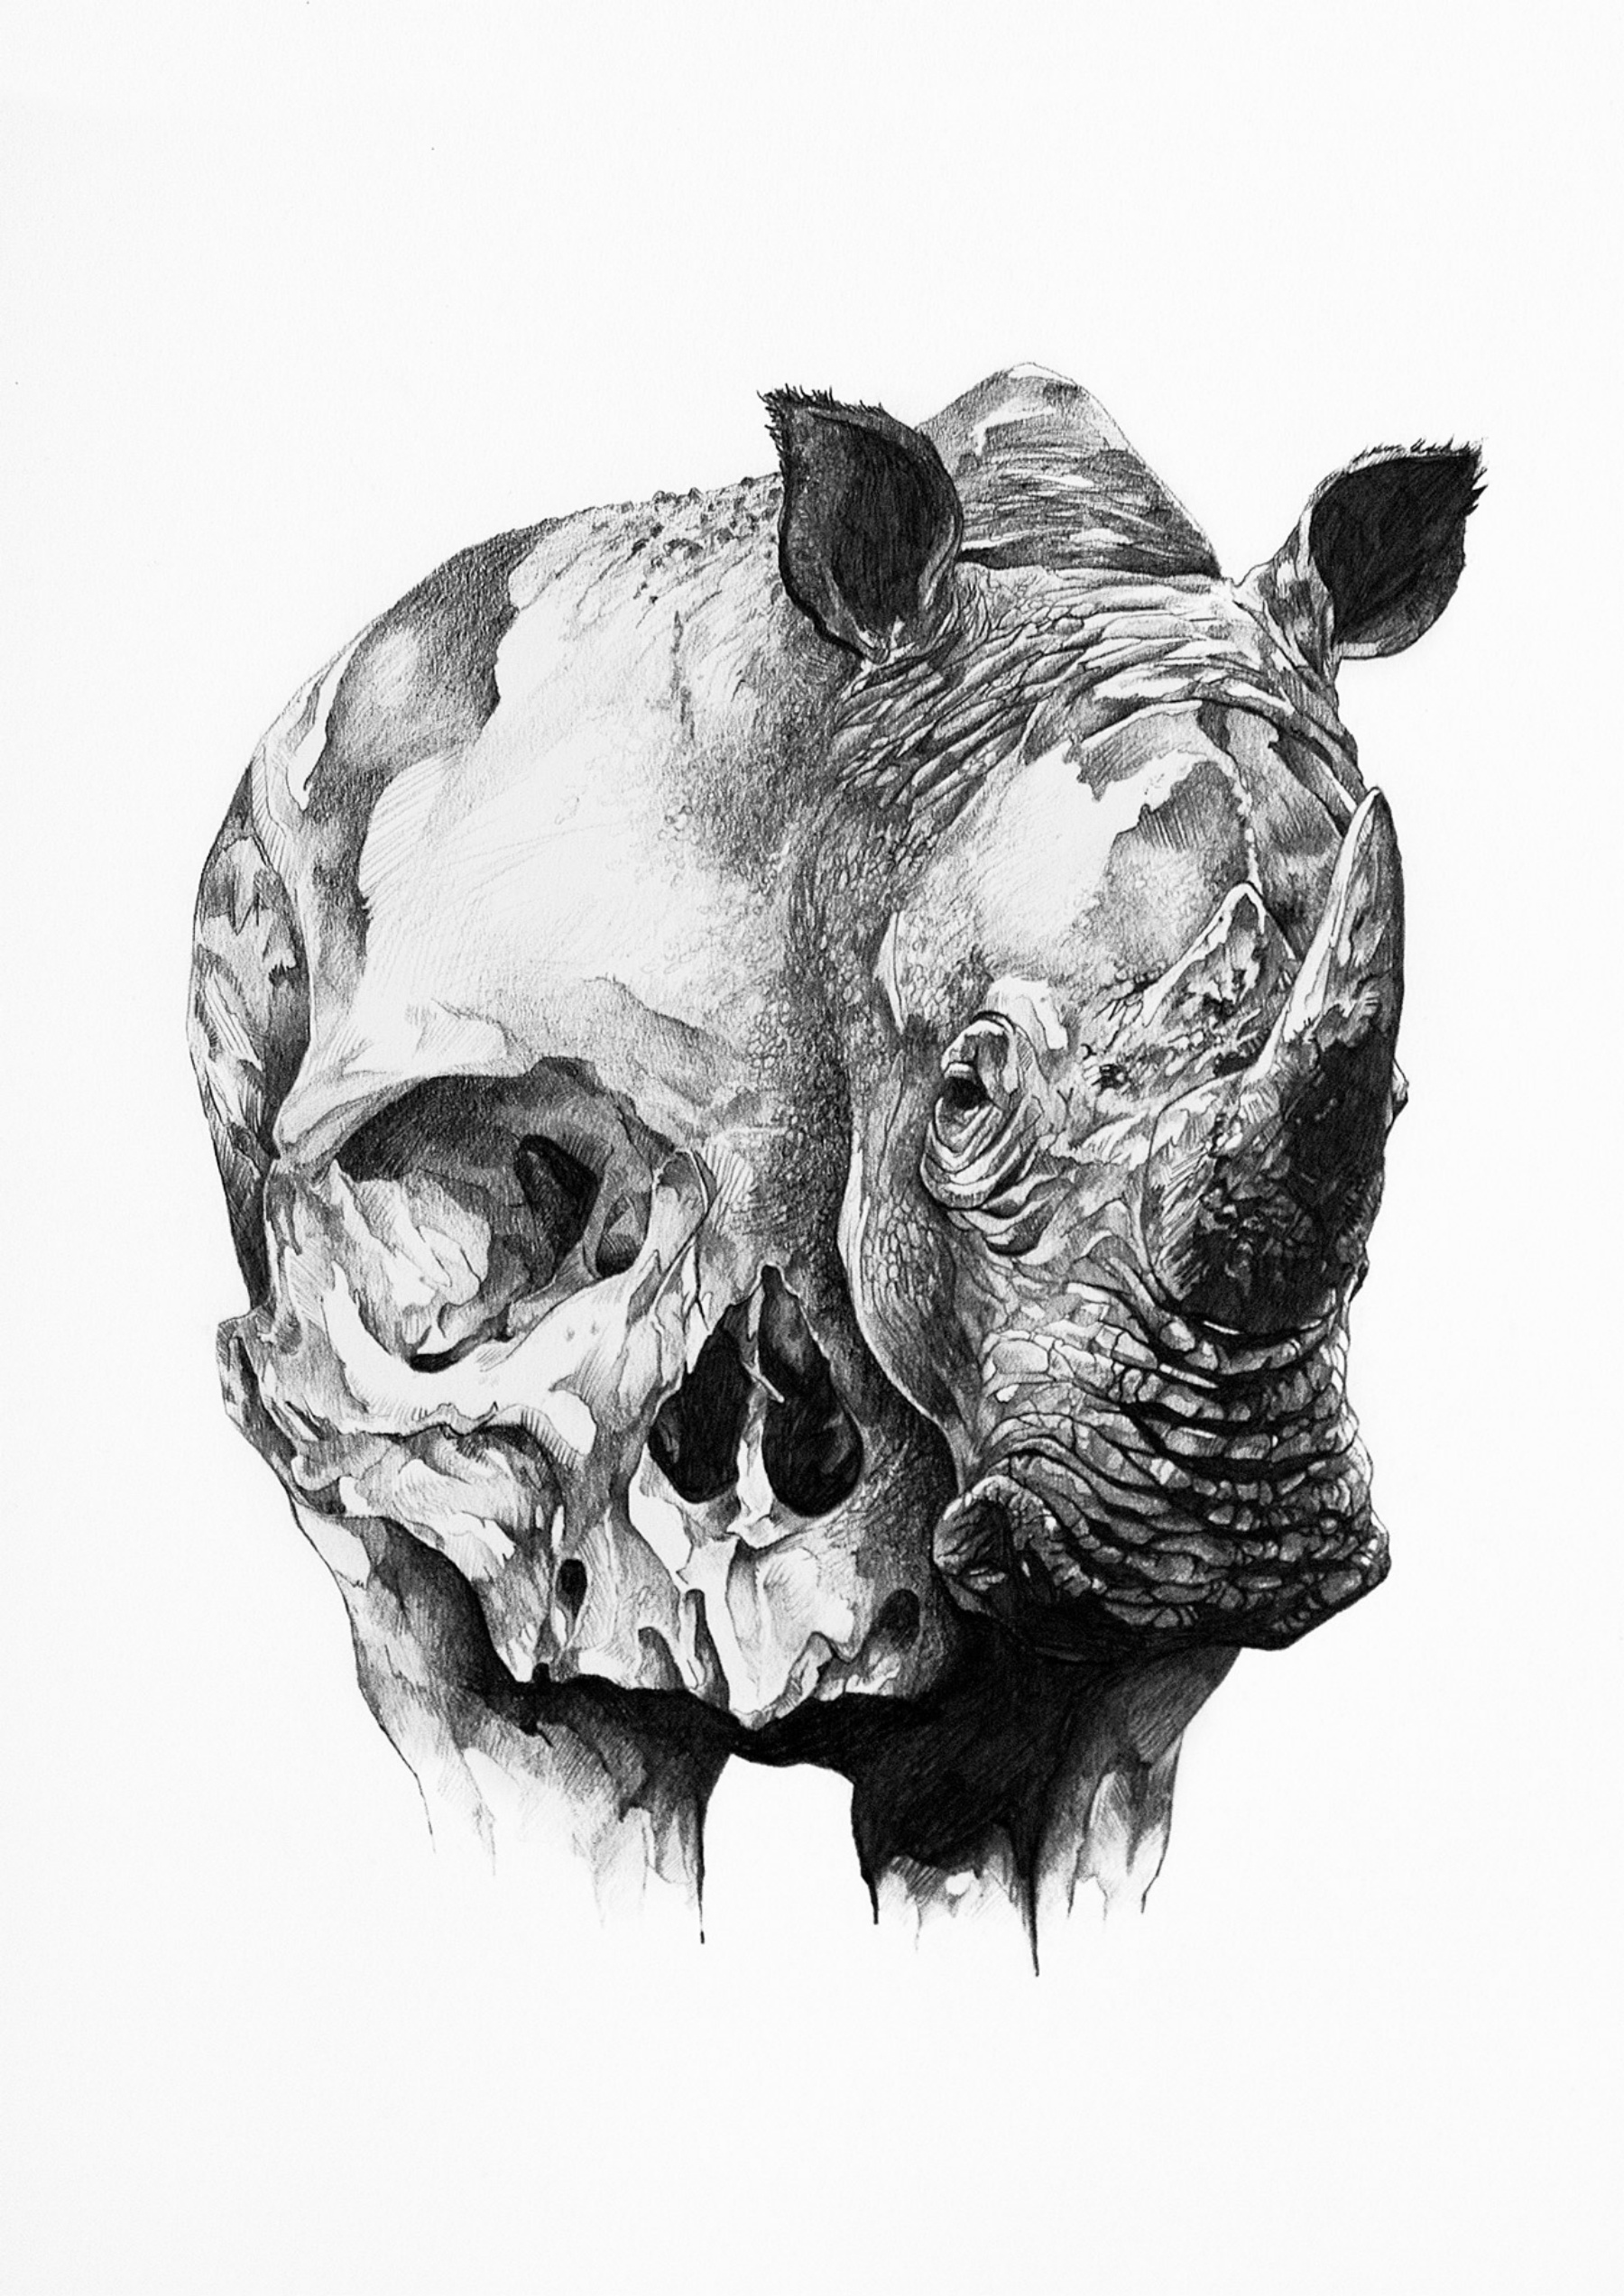 The Rhino and the Skull by Ivan Kamargio